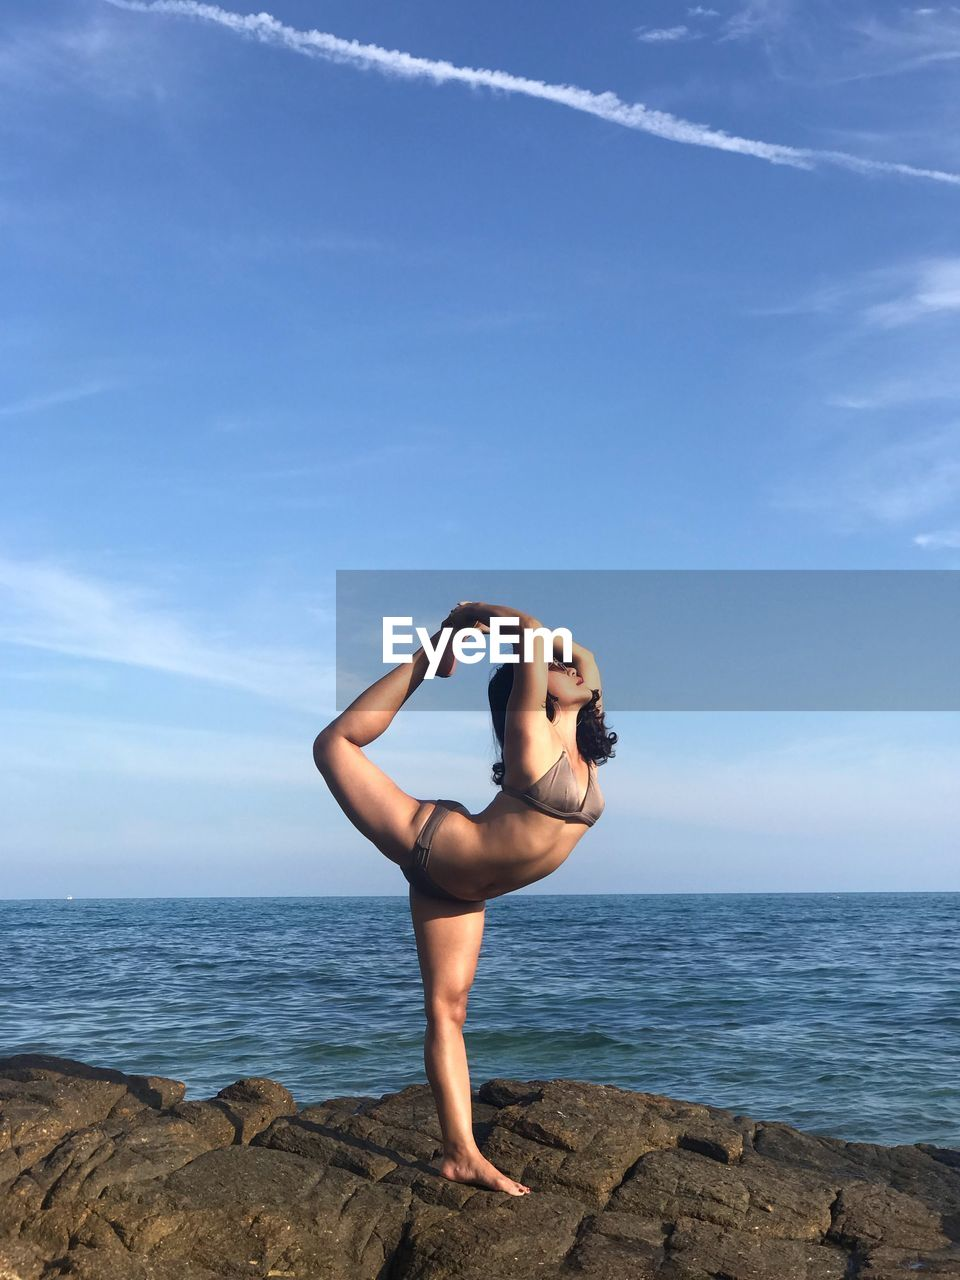 sea, sky, one person, water, horizon, young adult, lifestyles, horizon over water, young women, beauty in nature, full length, wellbeing, real people, leisure activity, standing, scenics - nature, nature, exercising, women